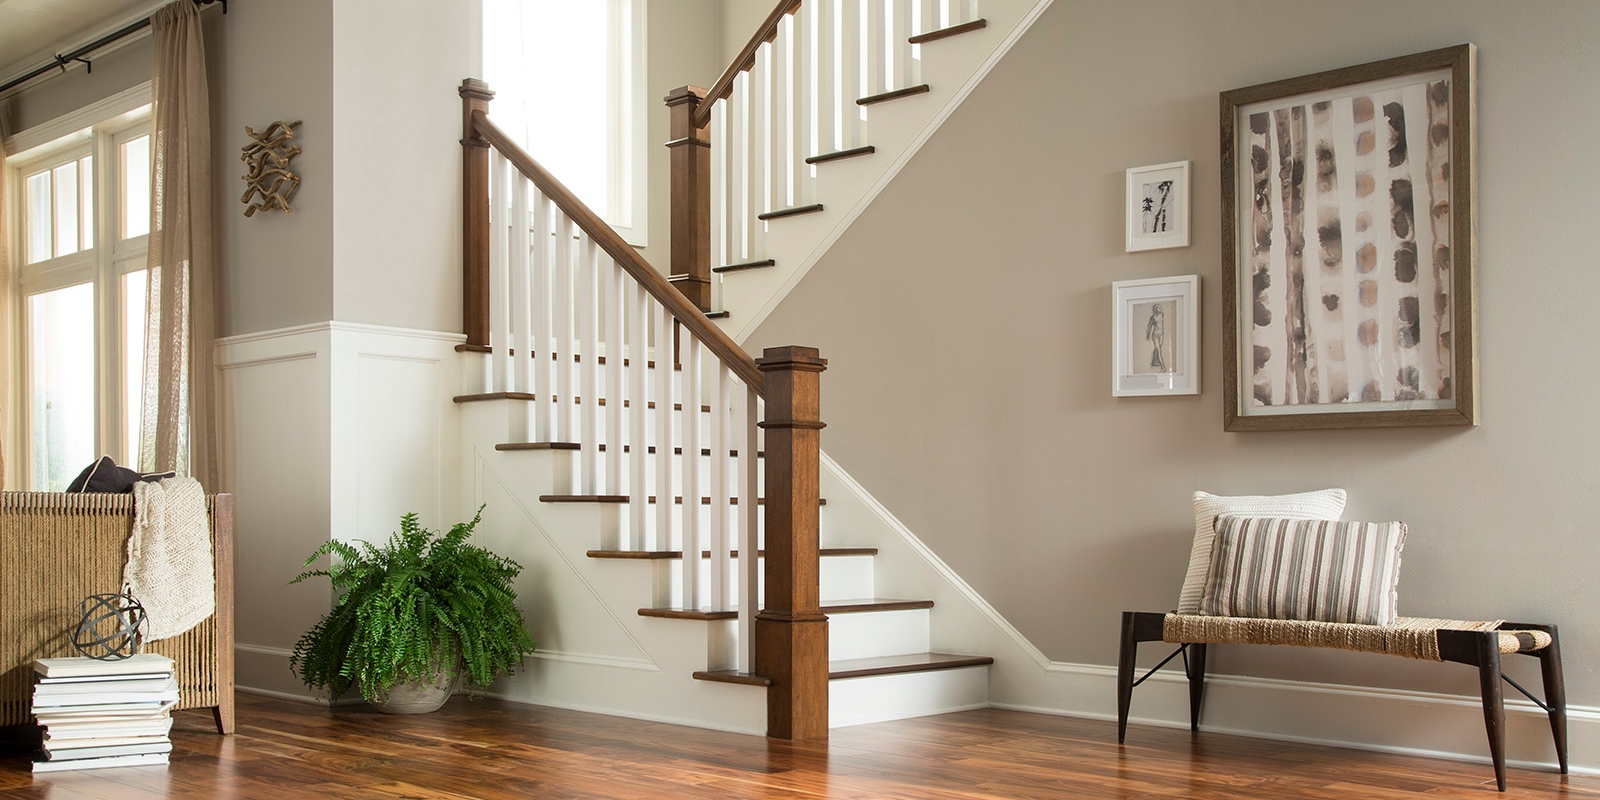 Stairs Stair Parts Attic Stairs Tague Lumber | Interior Handrails For Steps | Aircraft Cable | Wrought Iron | Western | Closed Staircase | Stair Bannister